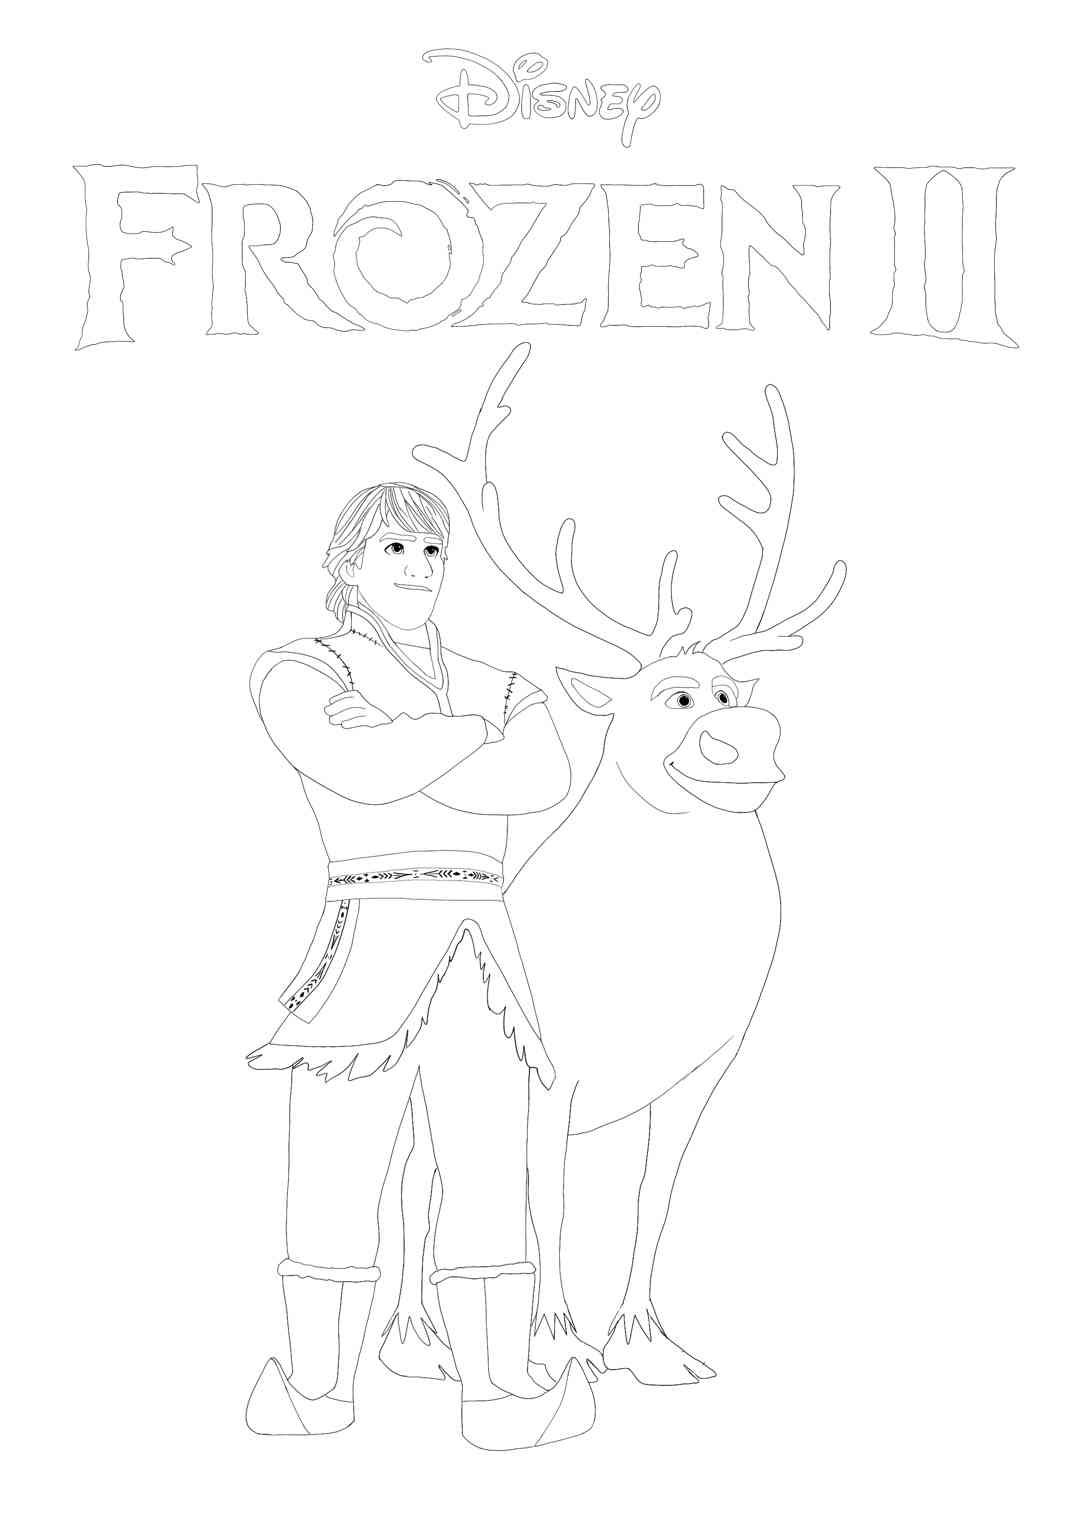 Free Frozen 2 Kristoff And Sven Coloring Page Print Or Download Frozen Ii Coloring Pictures Printable Coloring Pages Frozen Coloring Frozen Coloring Pages